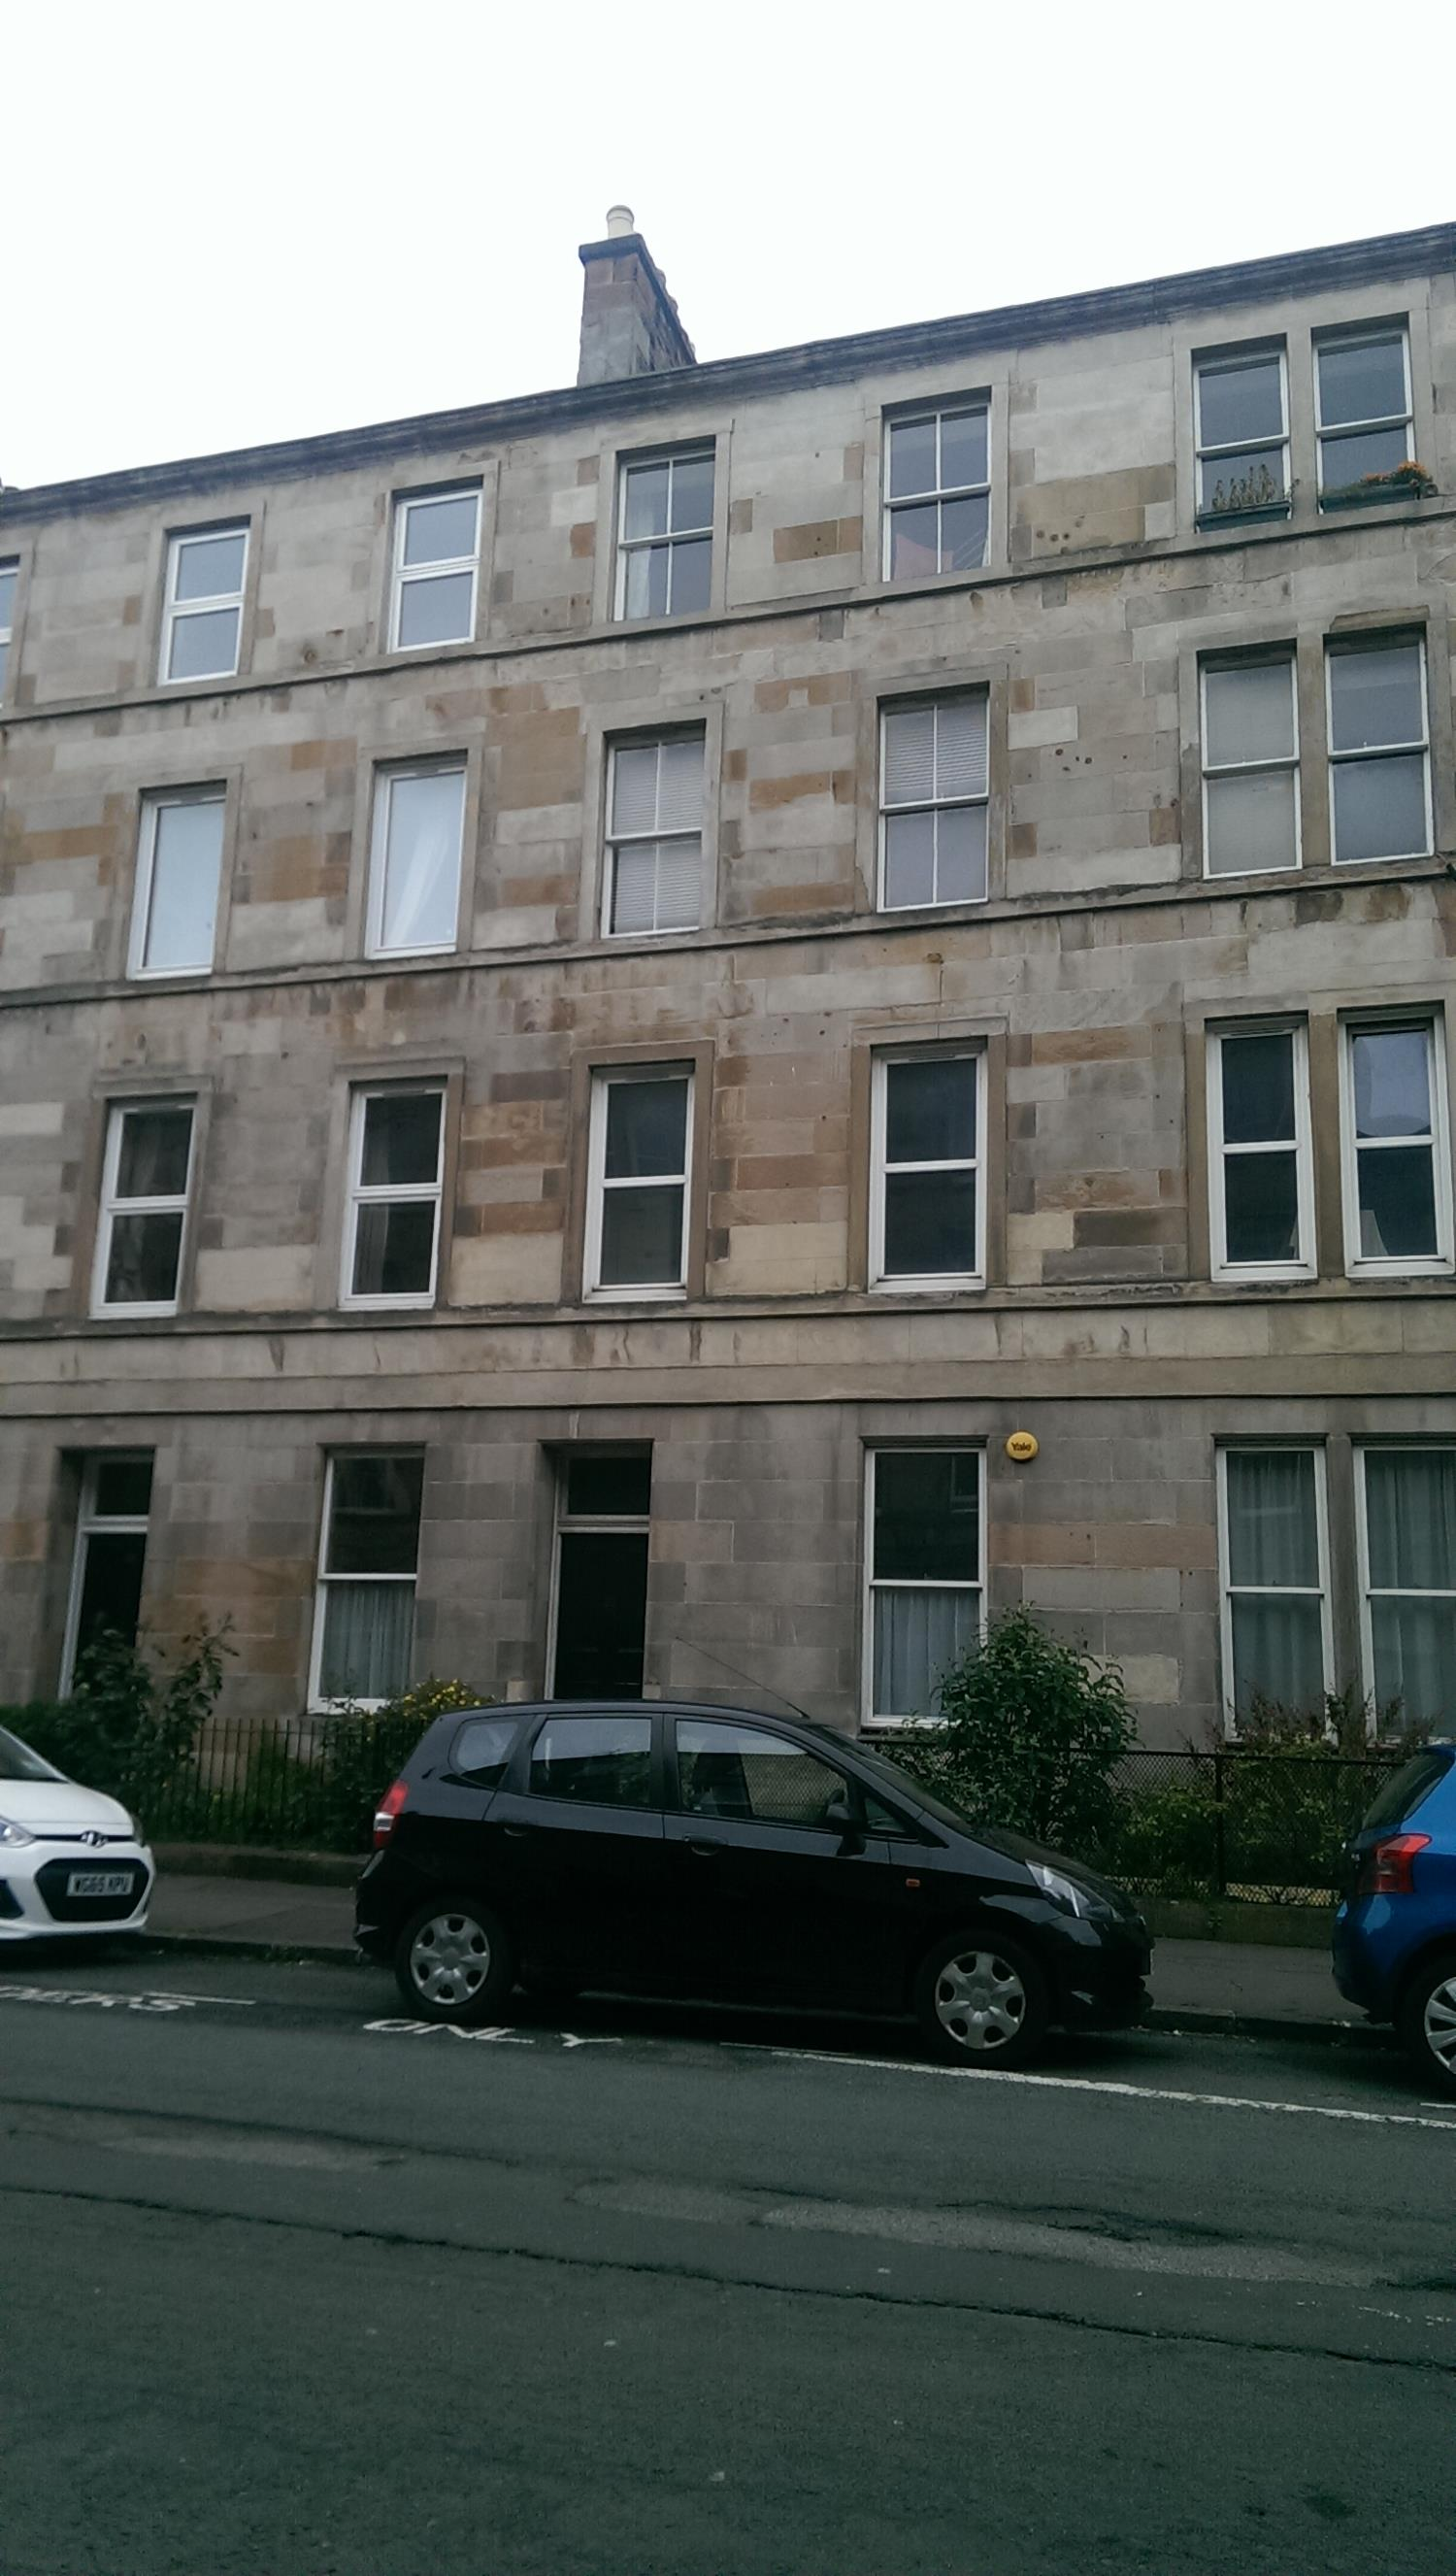 View property for rent Panmure Place, Edinburgh